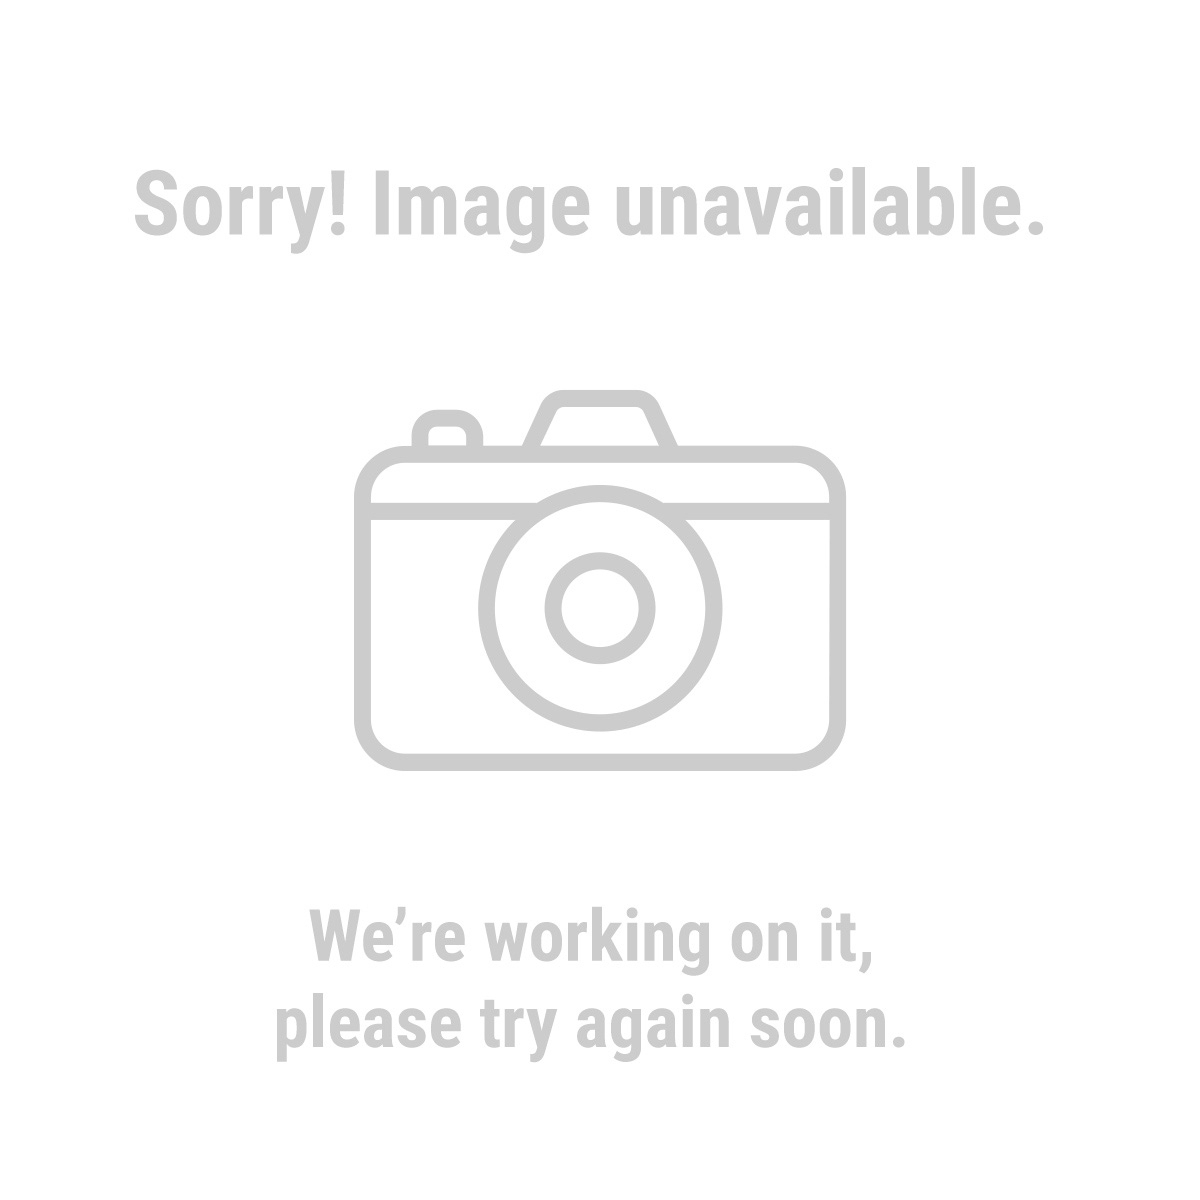 KIDDE 99912 5.5 Lb. Fire Extinguisher